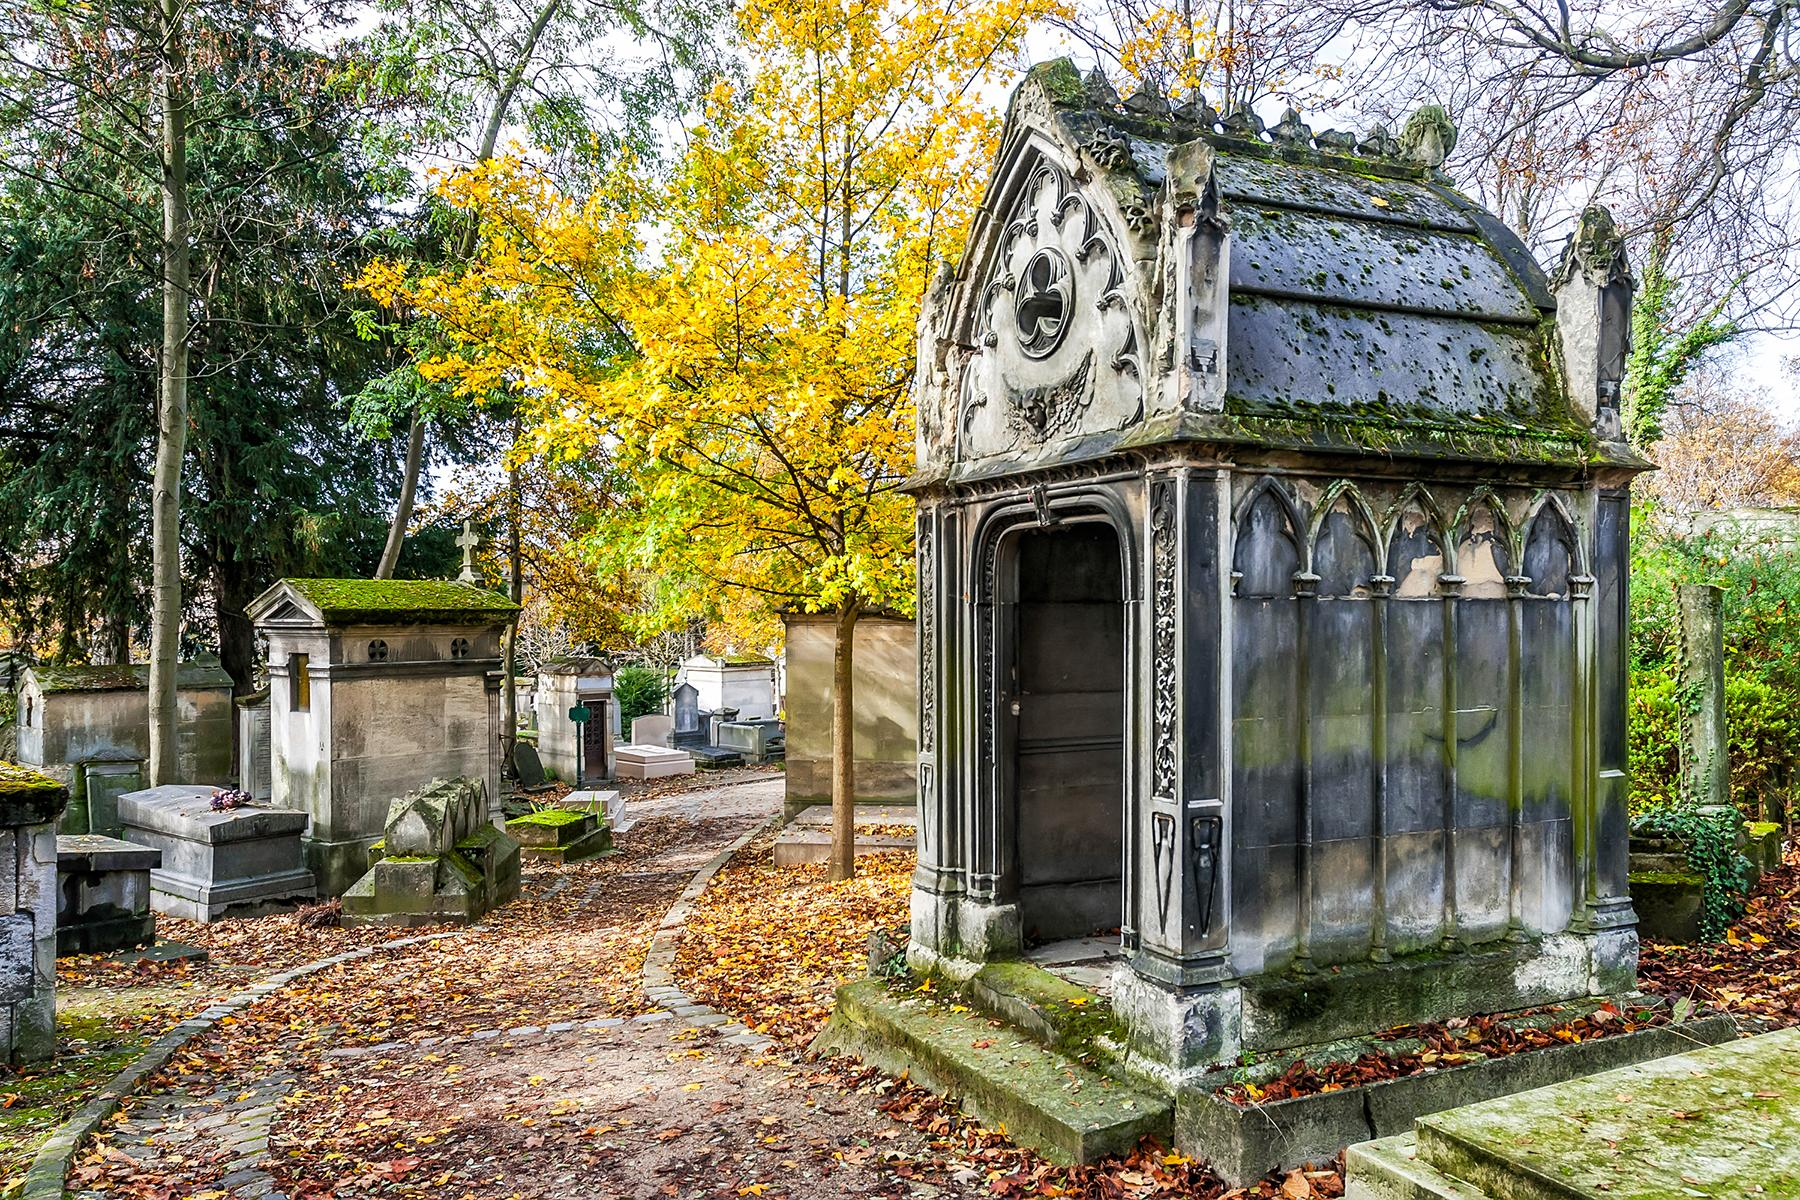 UltimateParis_PereLaChaise_shutterstock159423110_1 the 25 ultimate things to do in paris The 25 Ultimate Things to Do in Paris UltimateParis PereLaChaise shutterstock159423110 1